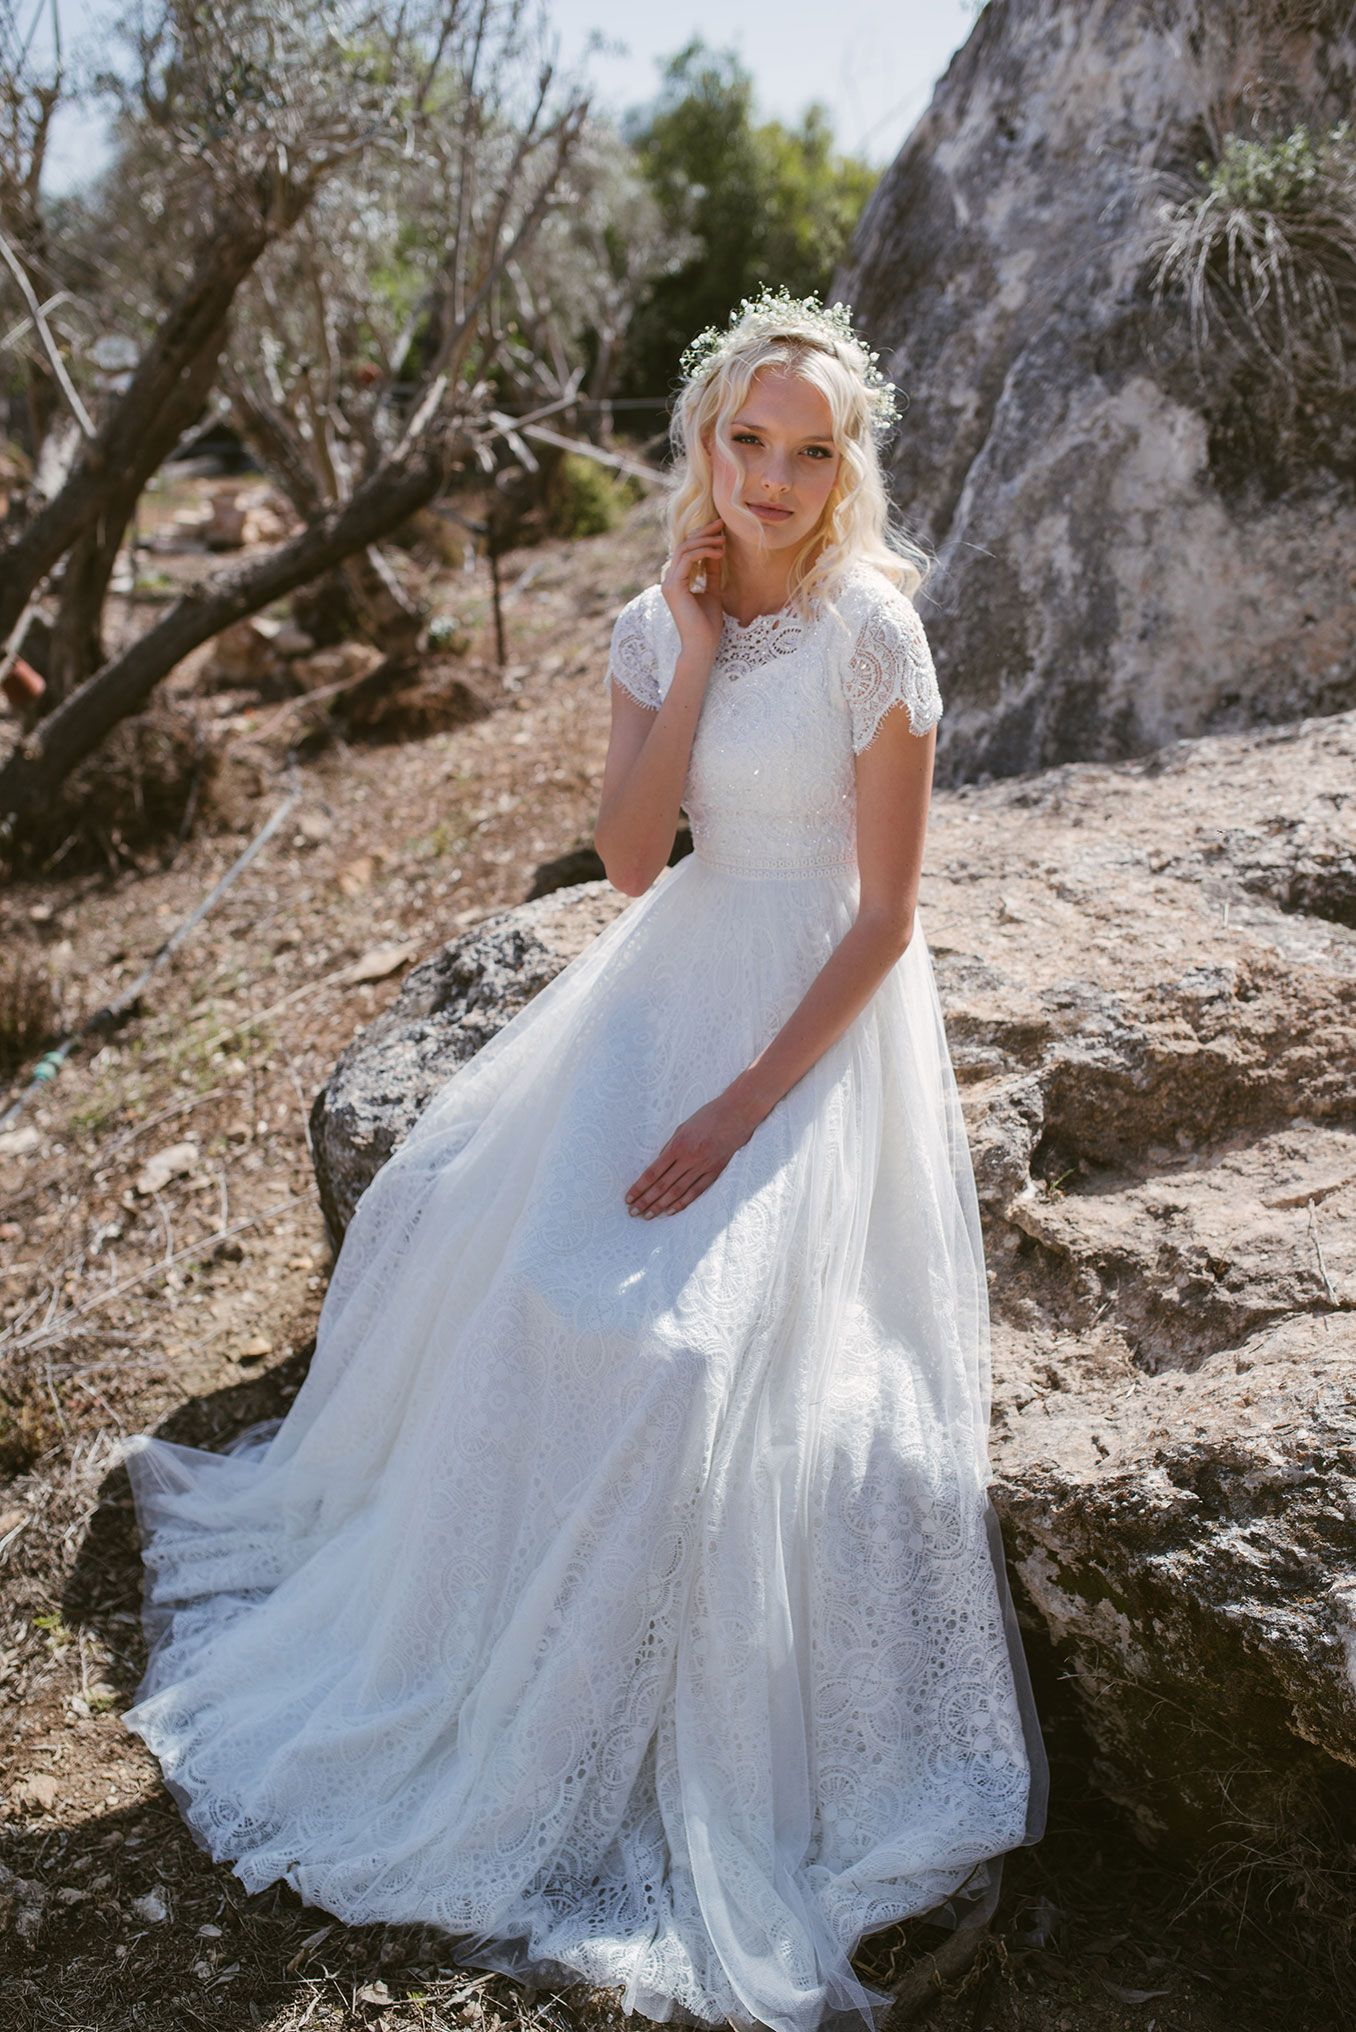 """Mia Pava """"Bloom 2017"""" Bridal Collection  Gown by Mia Pava  Photo by Natalie Schor  www.miapava.com"""